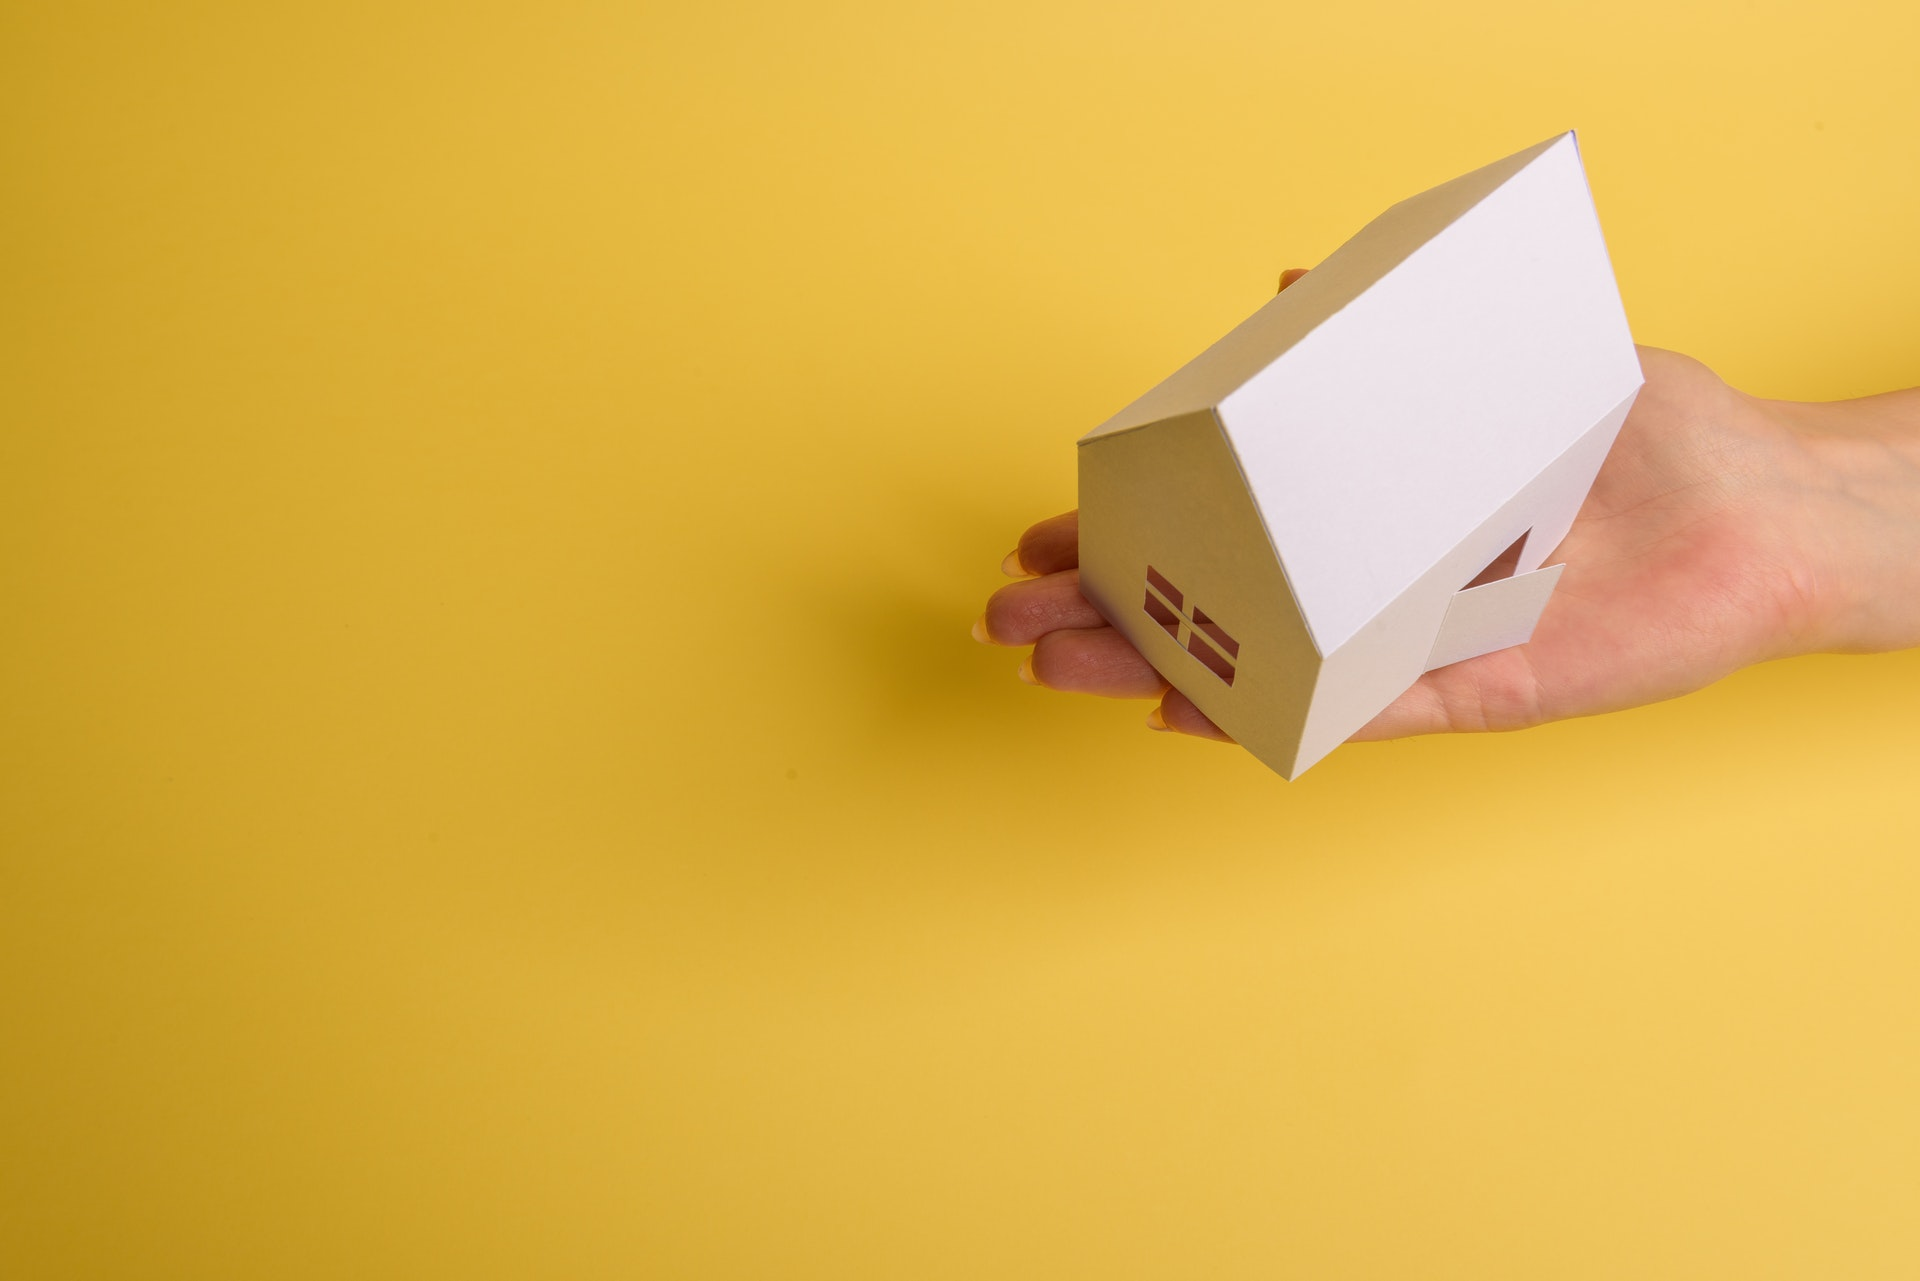 Hand holding a paper house